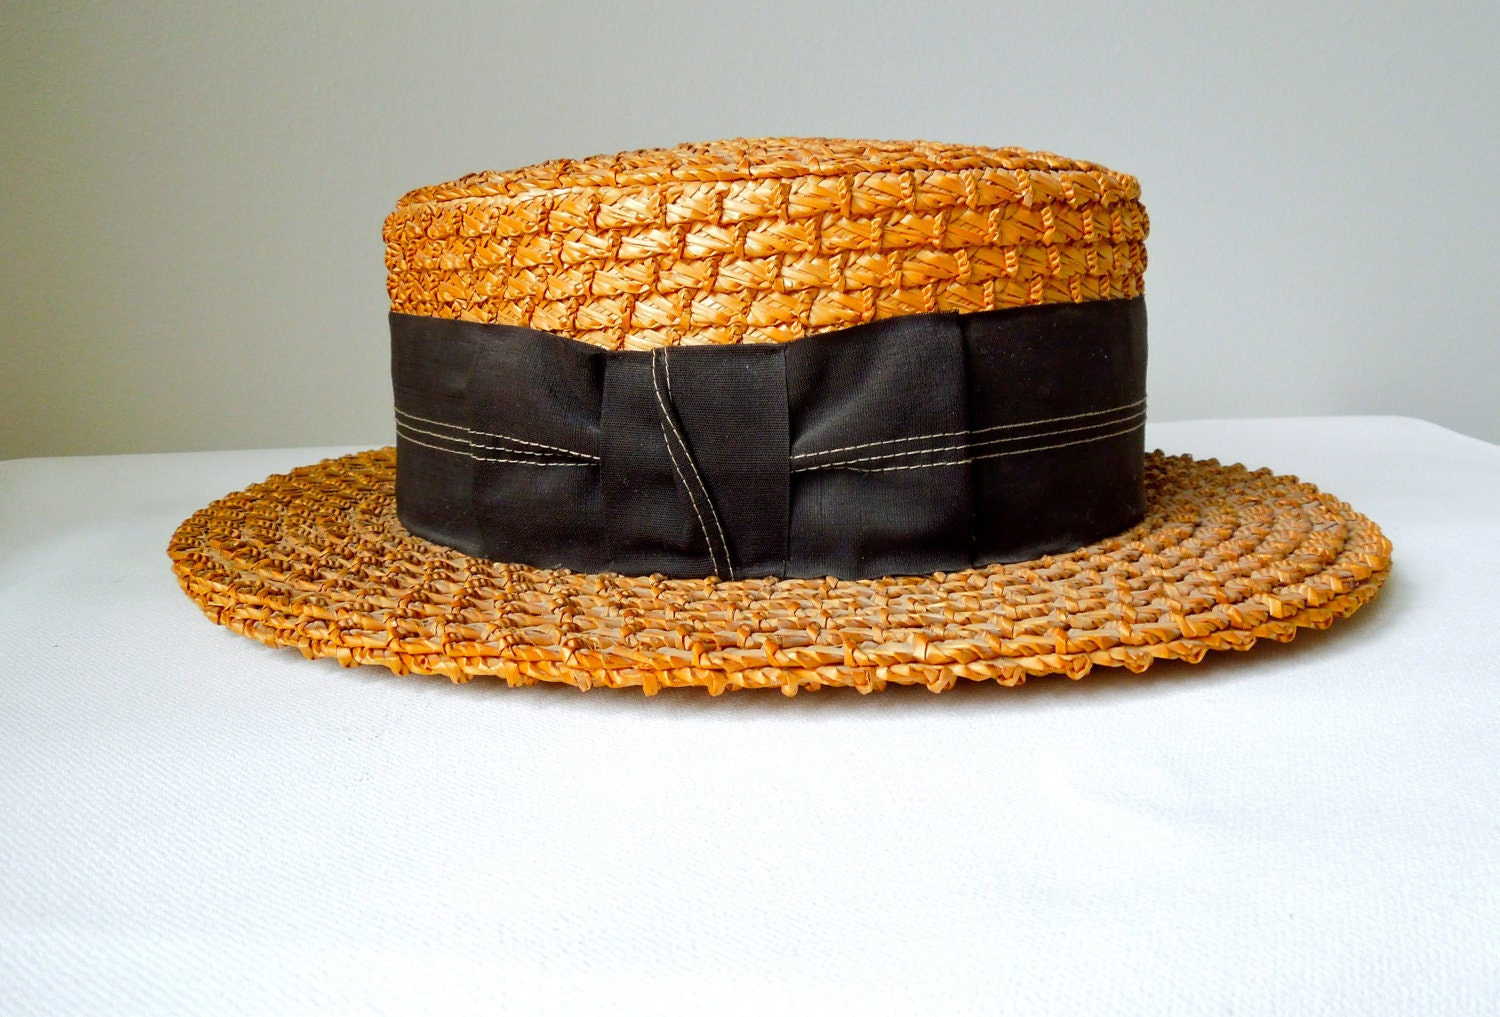 Homewarming Gift Vintage Straw Boater Hat Coco Chanel